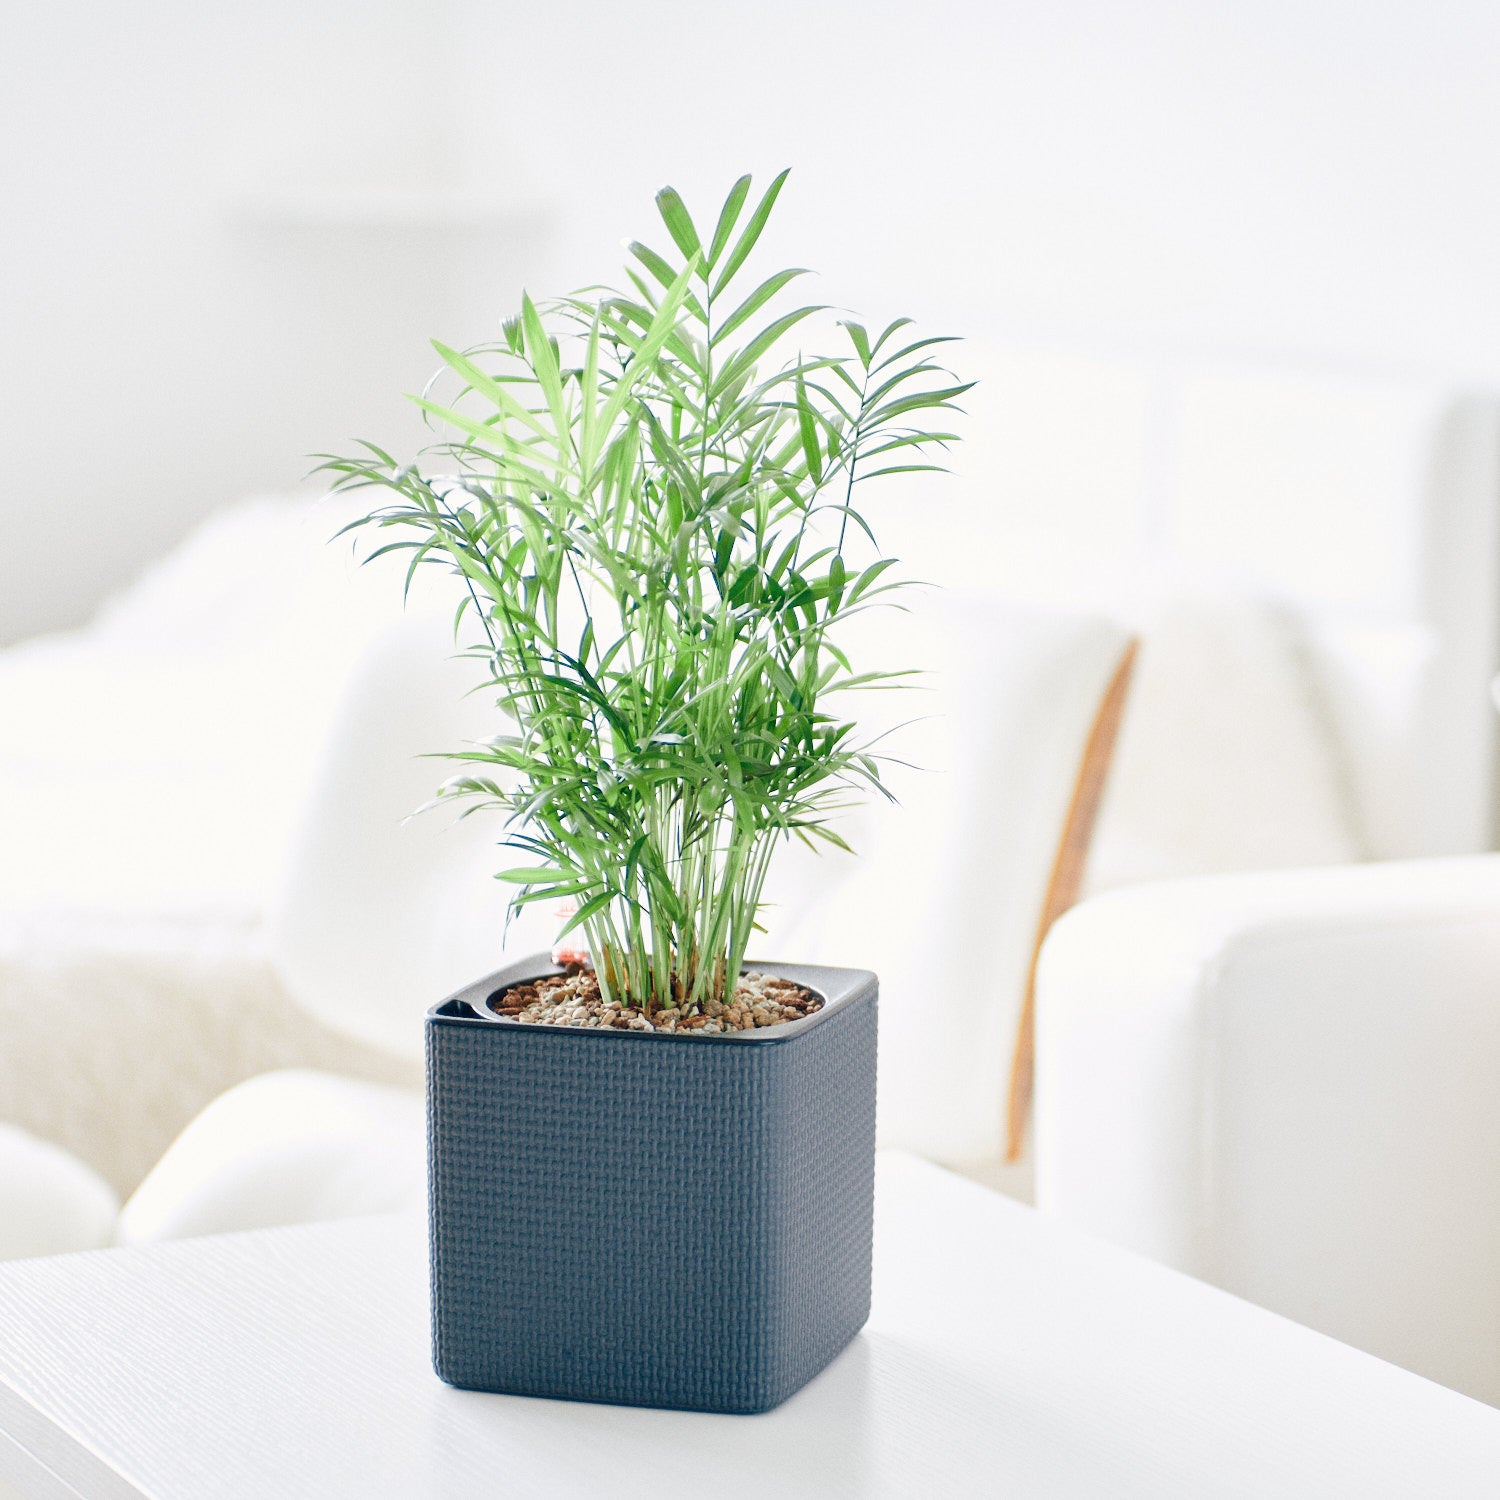 Bella Palm In Lechuza Cube 14 Slate Planter | My City Plants